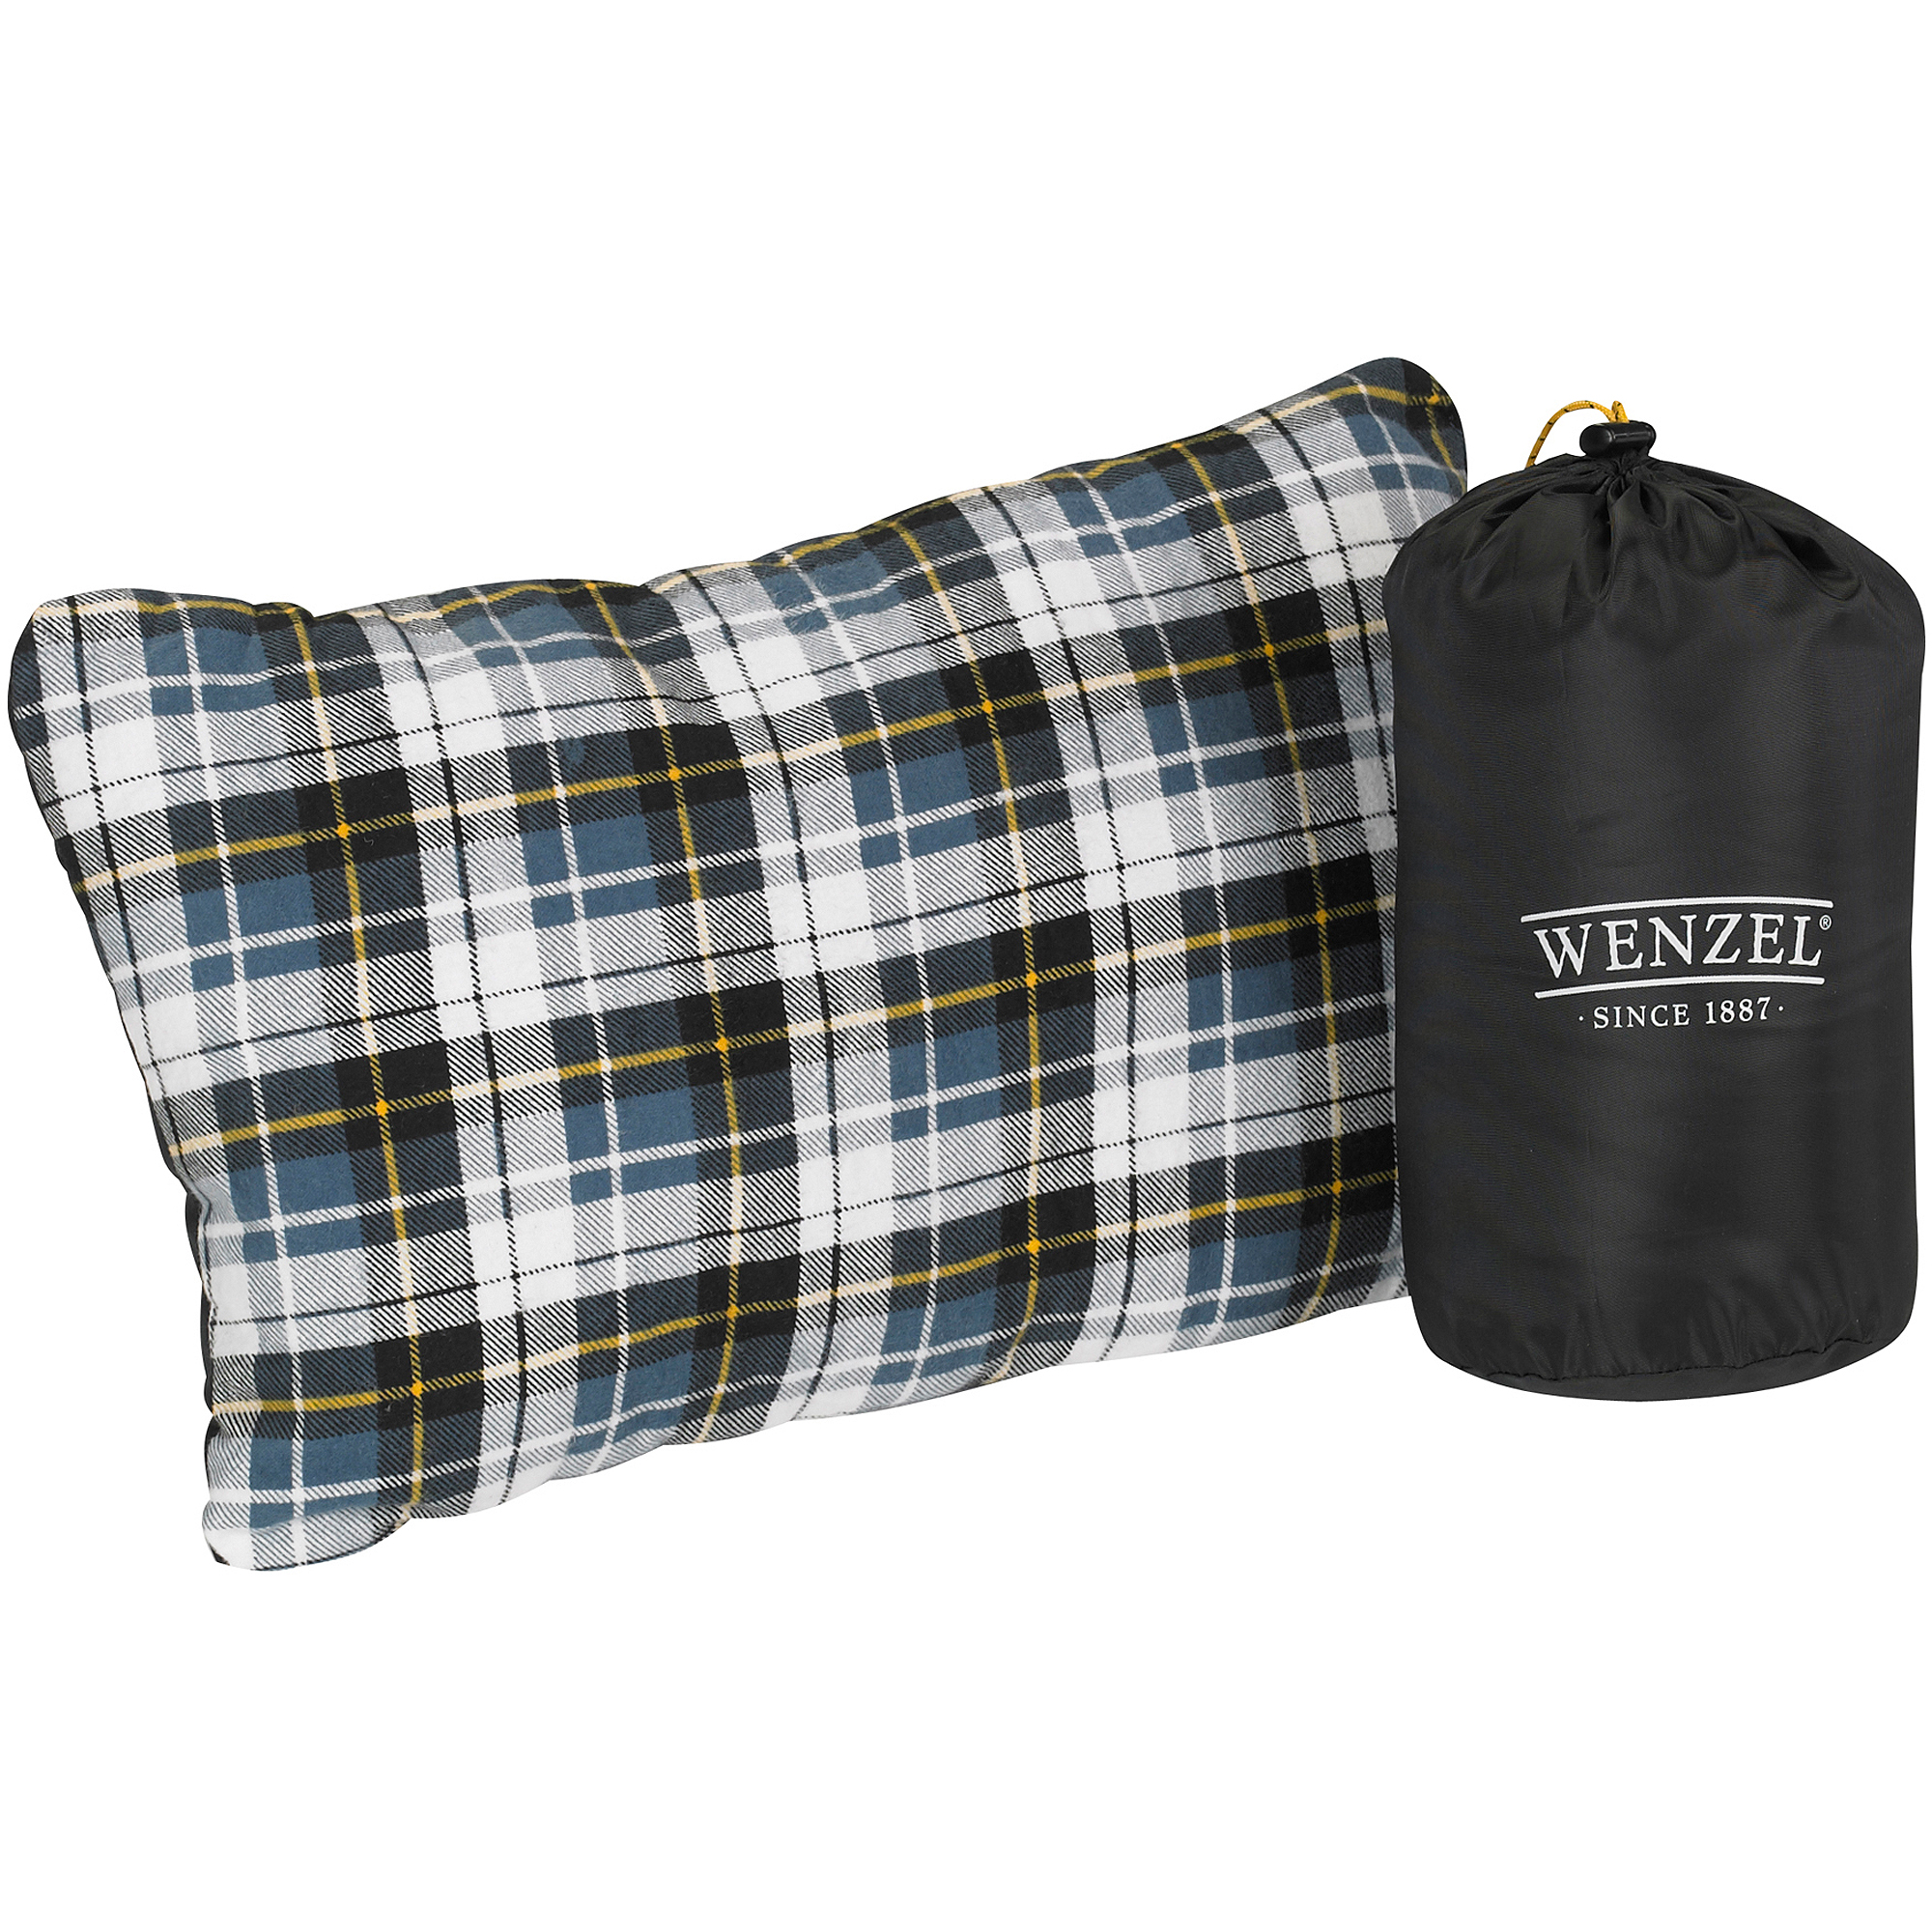 Wenzel Camping Pillow, Blue Plaid